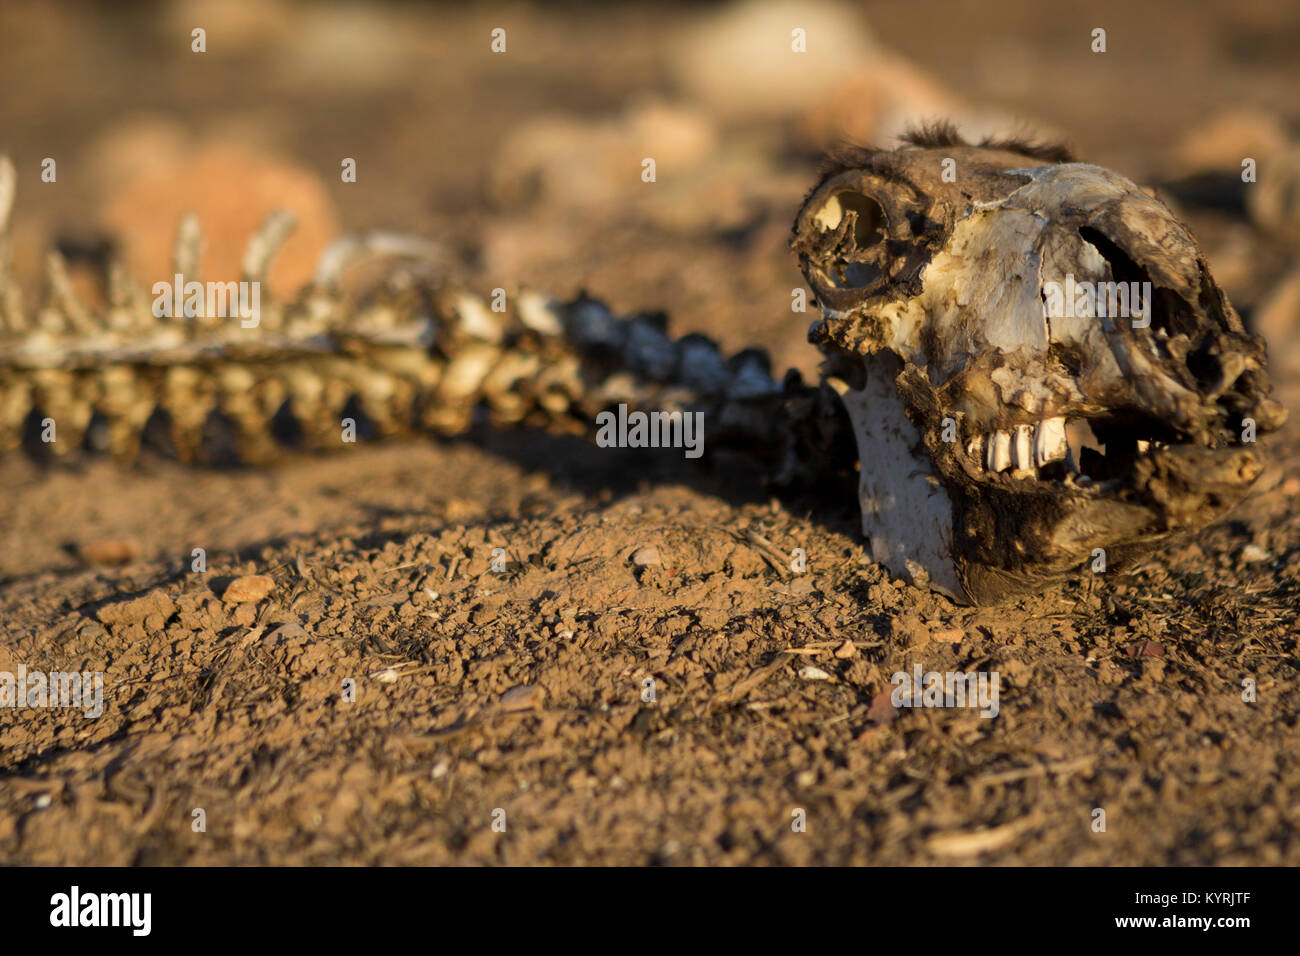 Animal skeleton in natural light, grim, depressing, powerful image of the effects of climate change and environmental - Stock Image